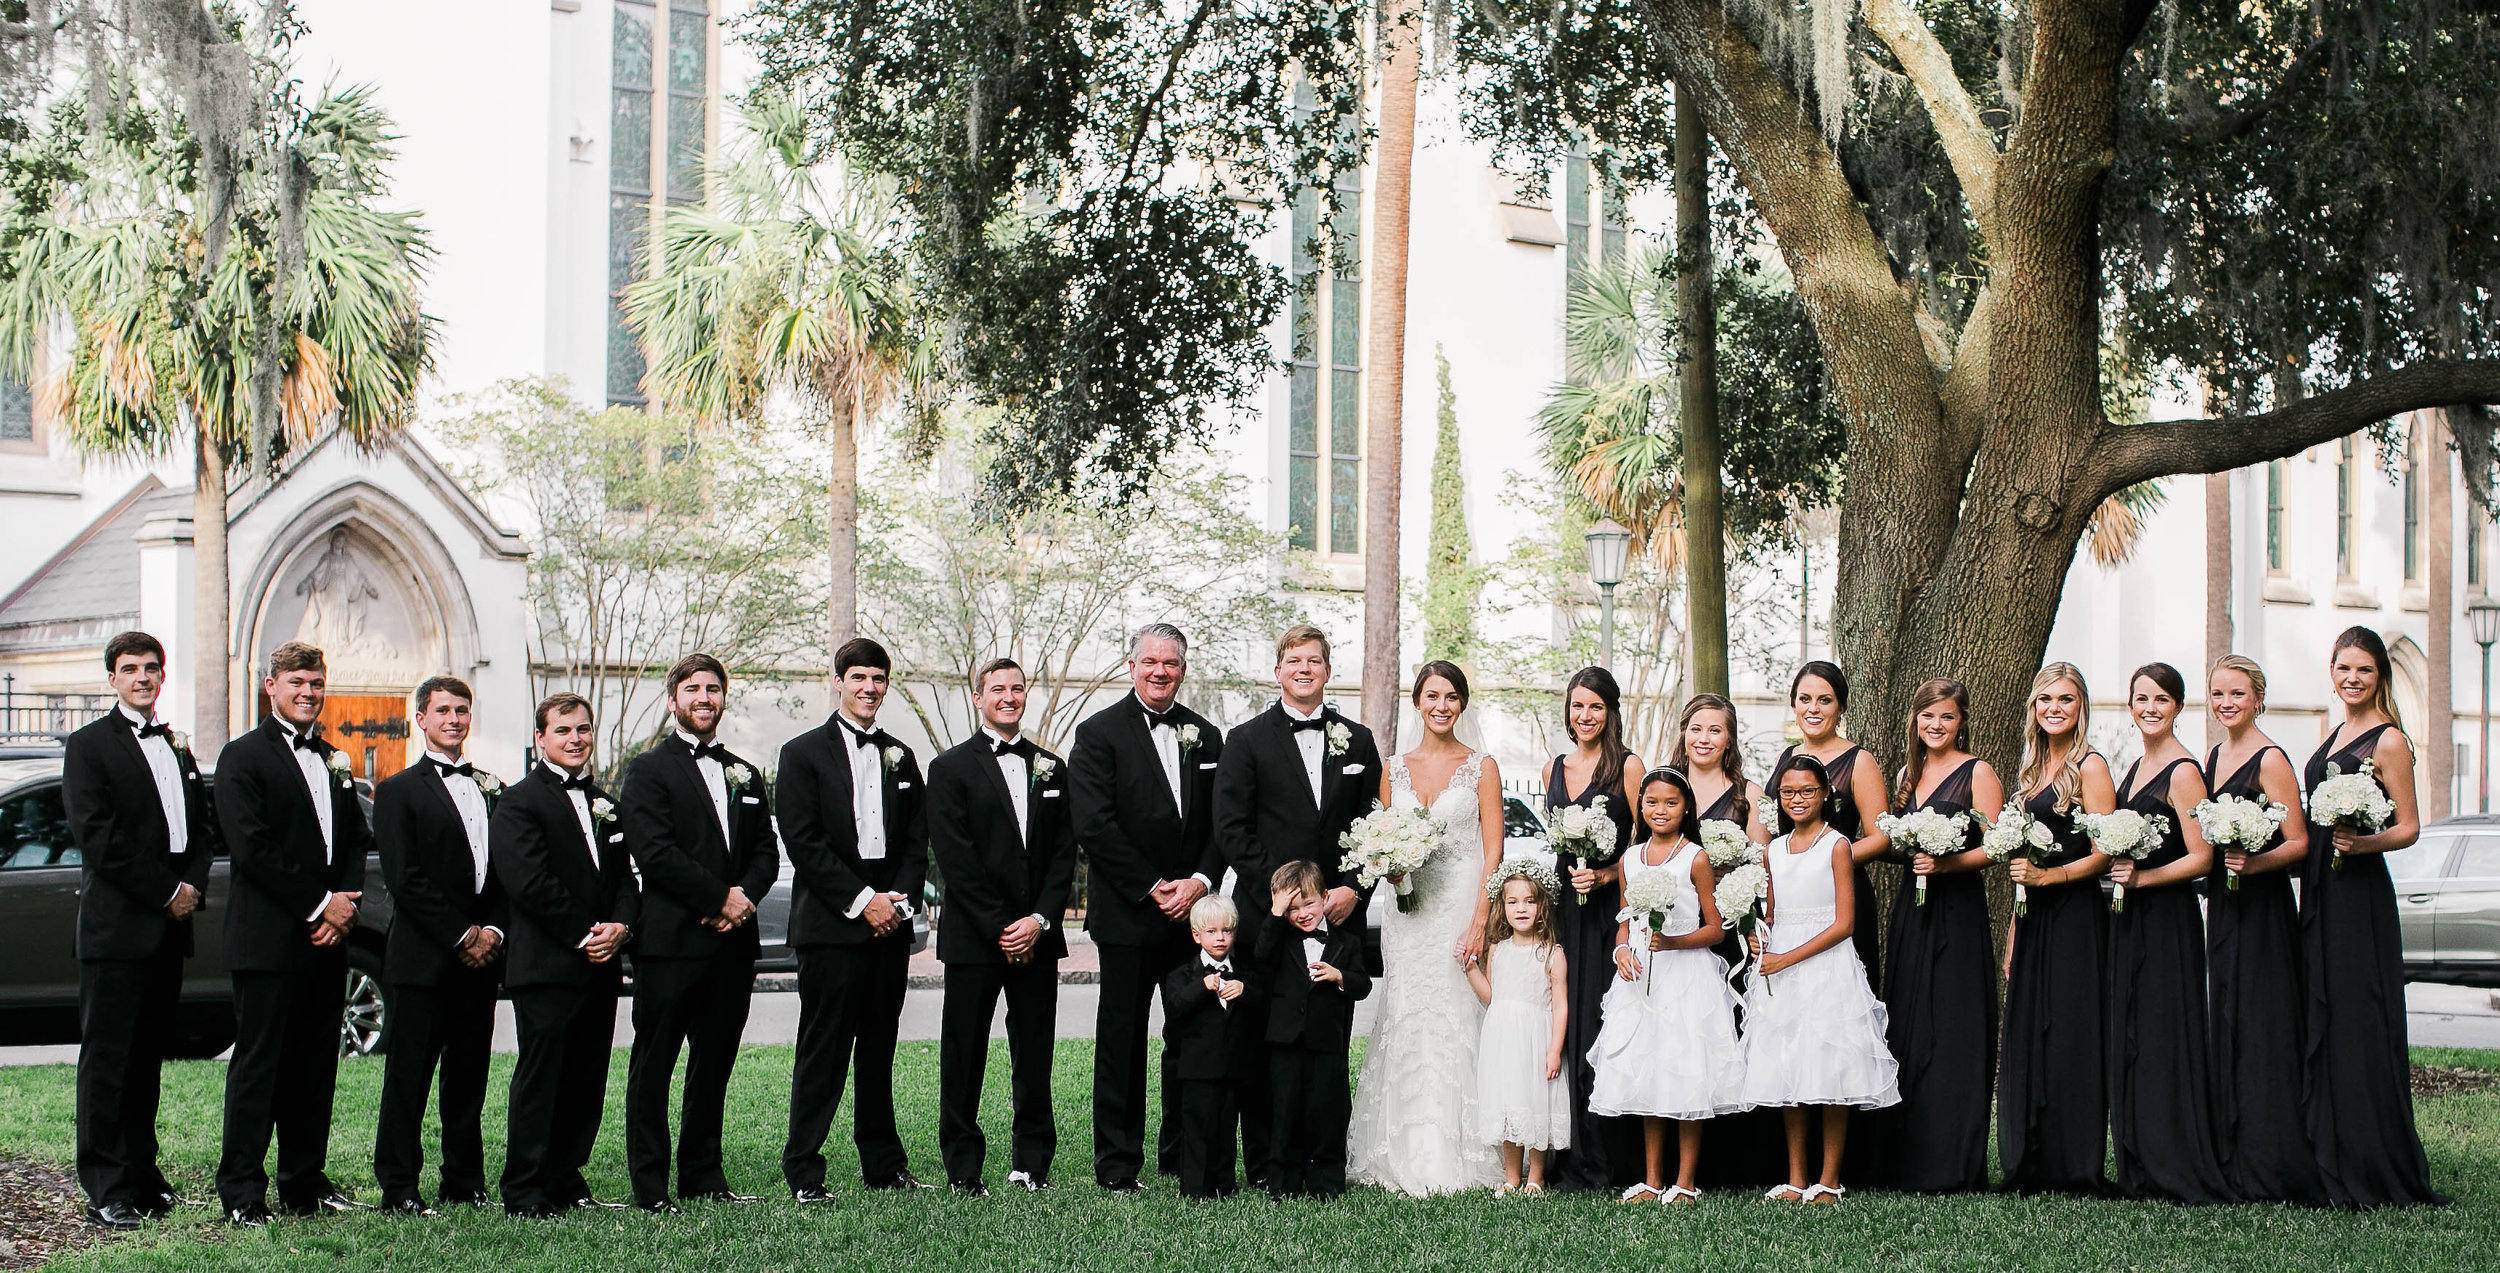 Navy and white bridal party in Savannah, Georgia